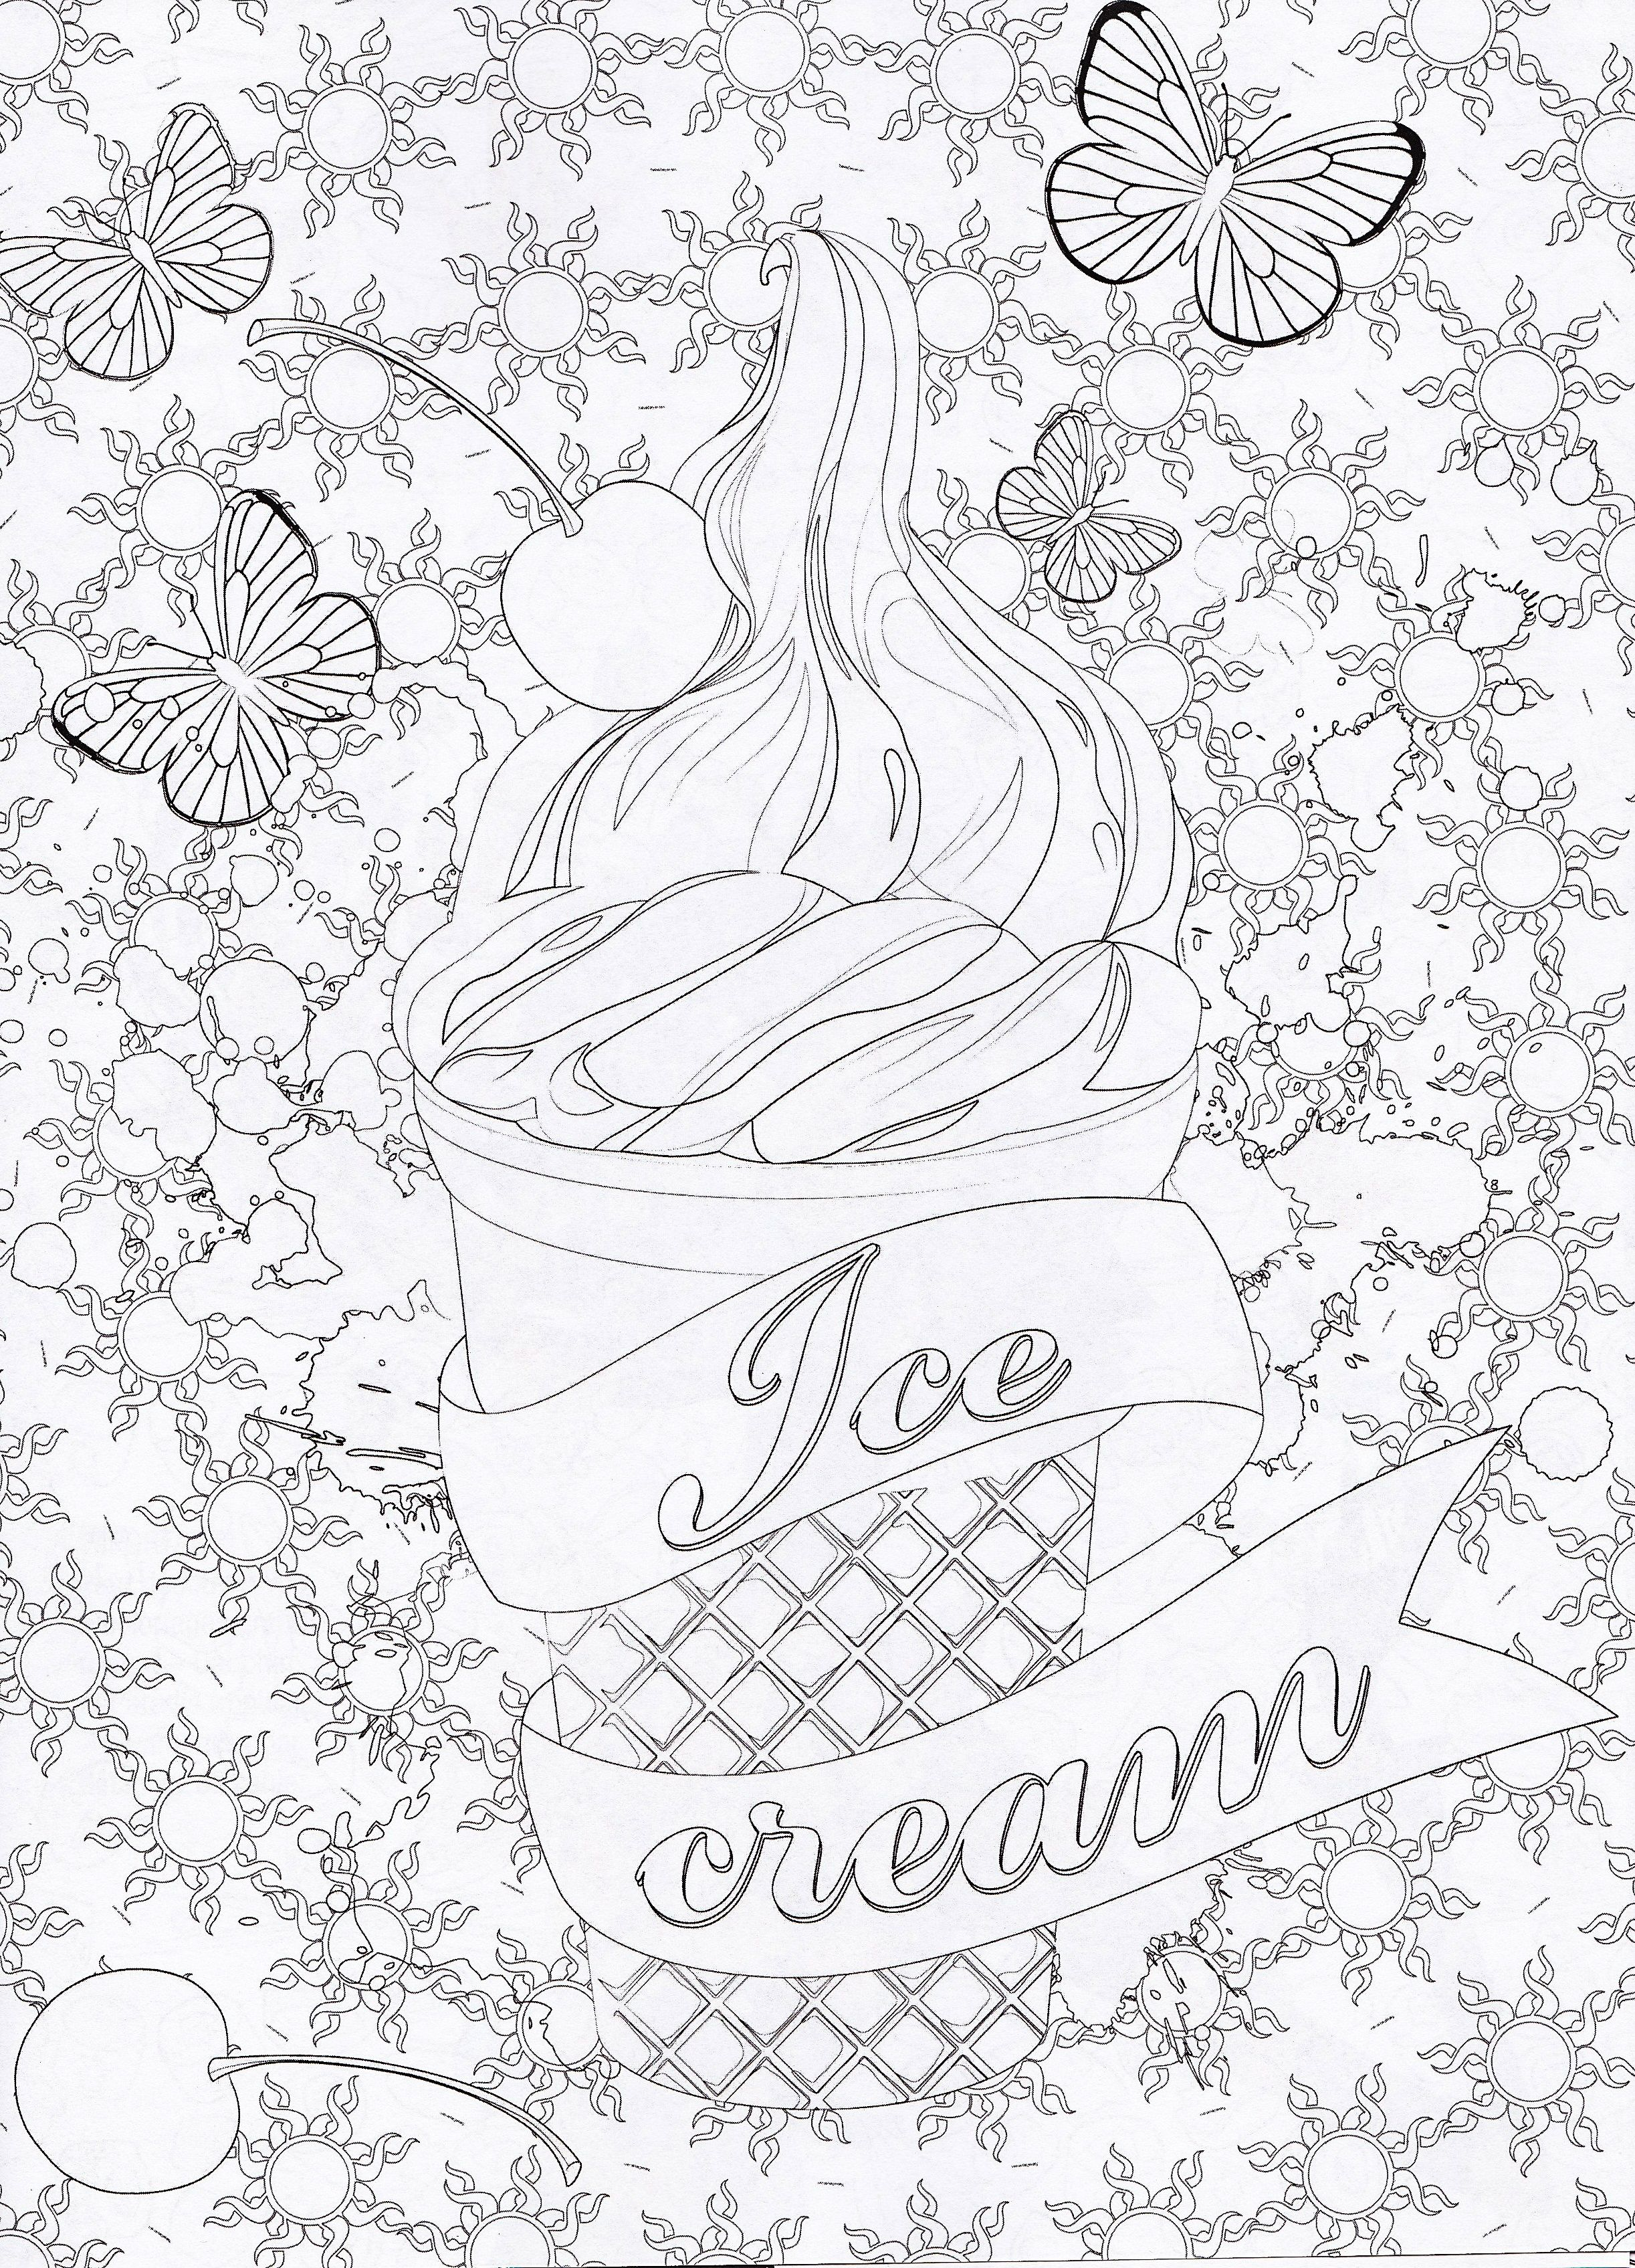 Magazine coloriage zen n 1 coloriage ice cream cupcakes gourmand kleurig pinterest - Coloriage therapie ...